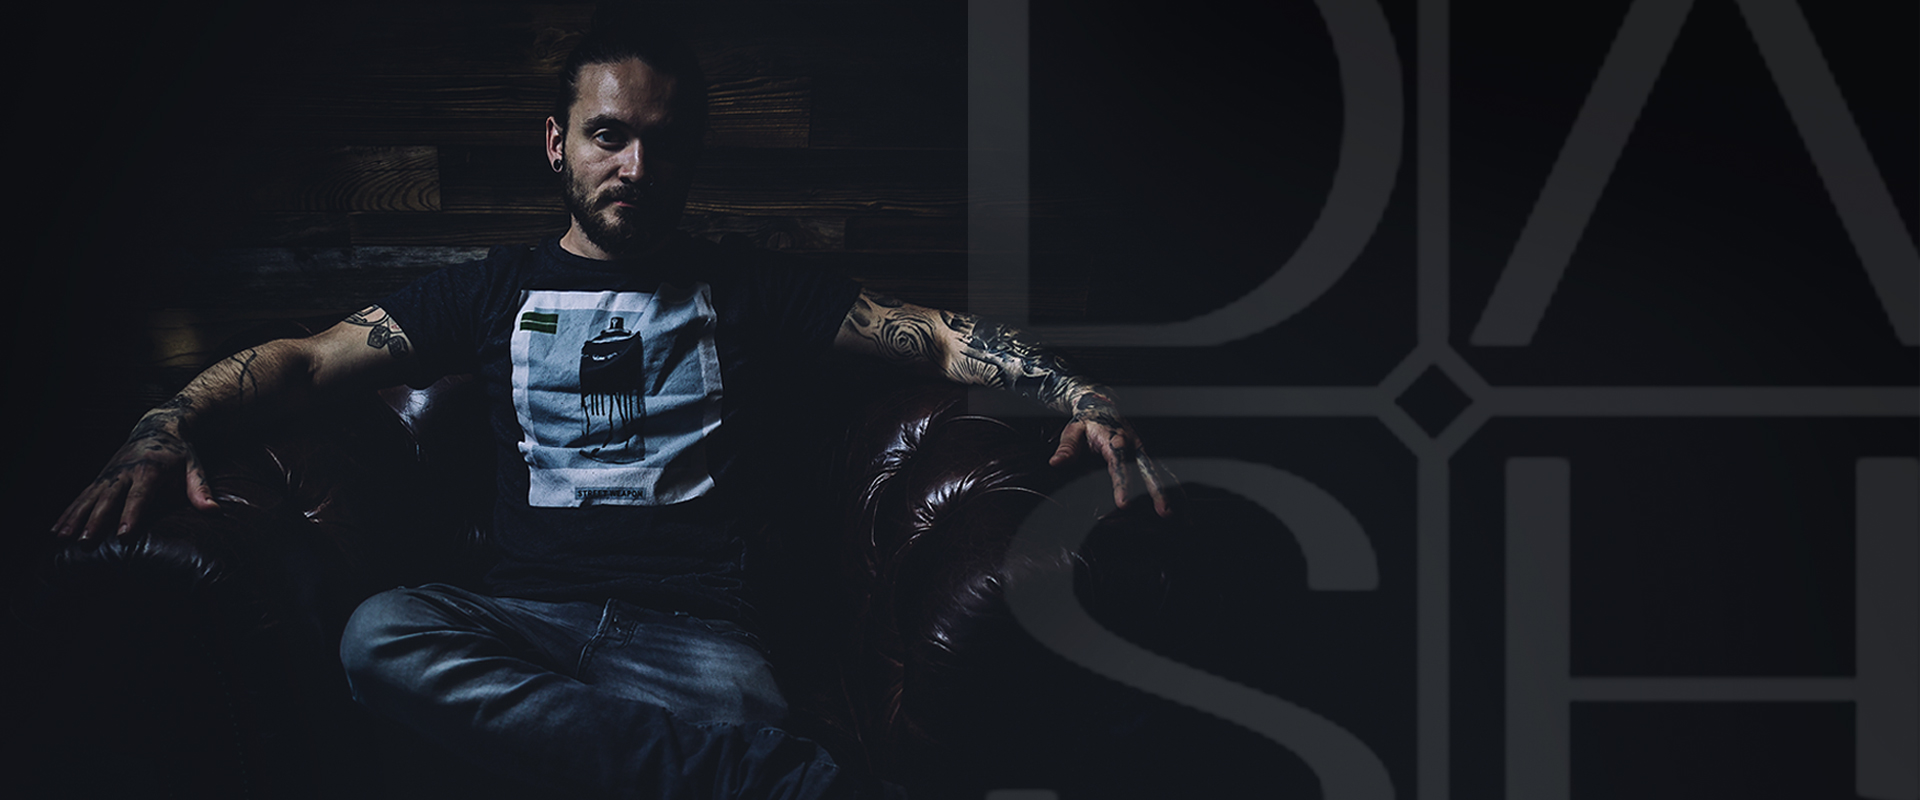 Danny ShoeStar Biographie DASH-TATTOO